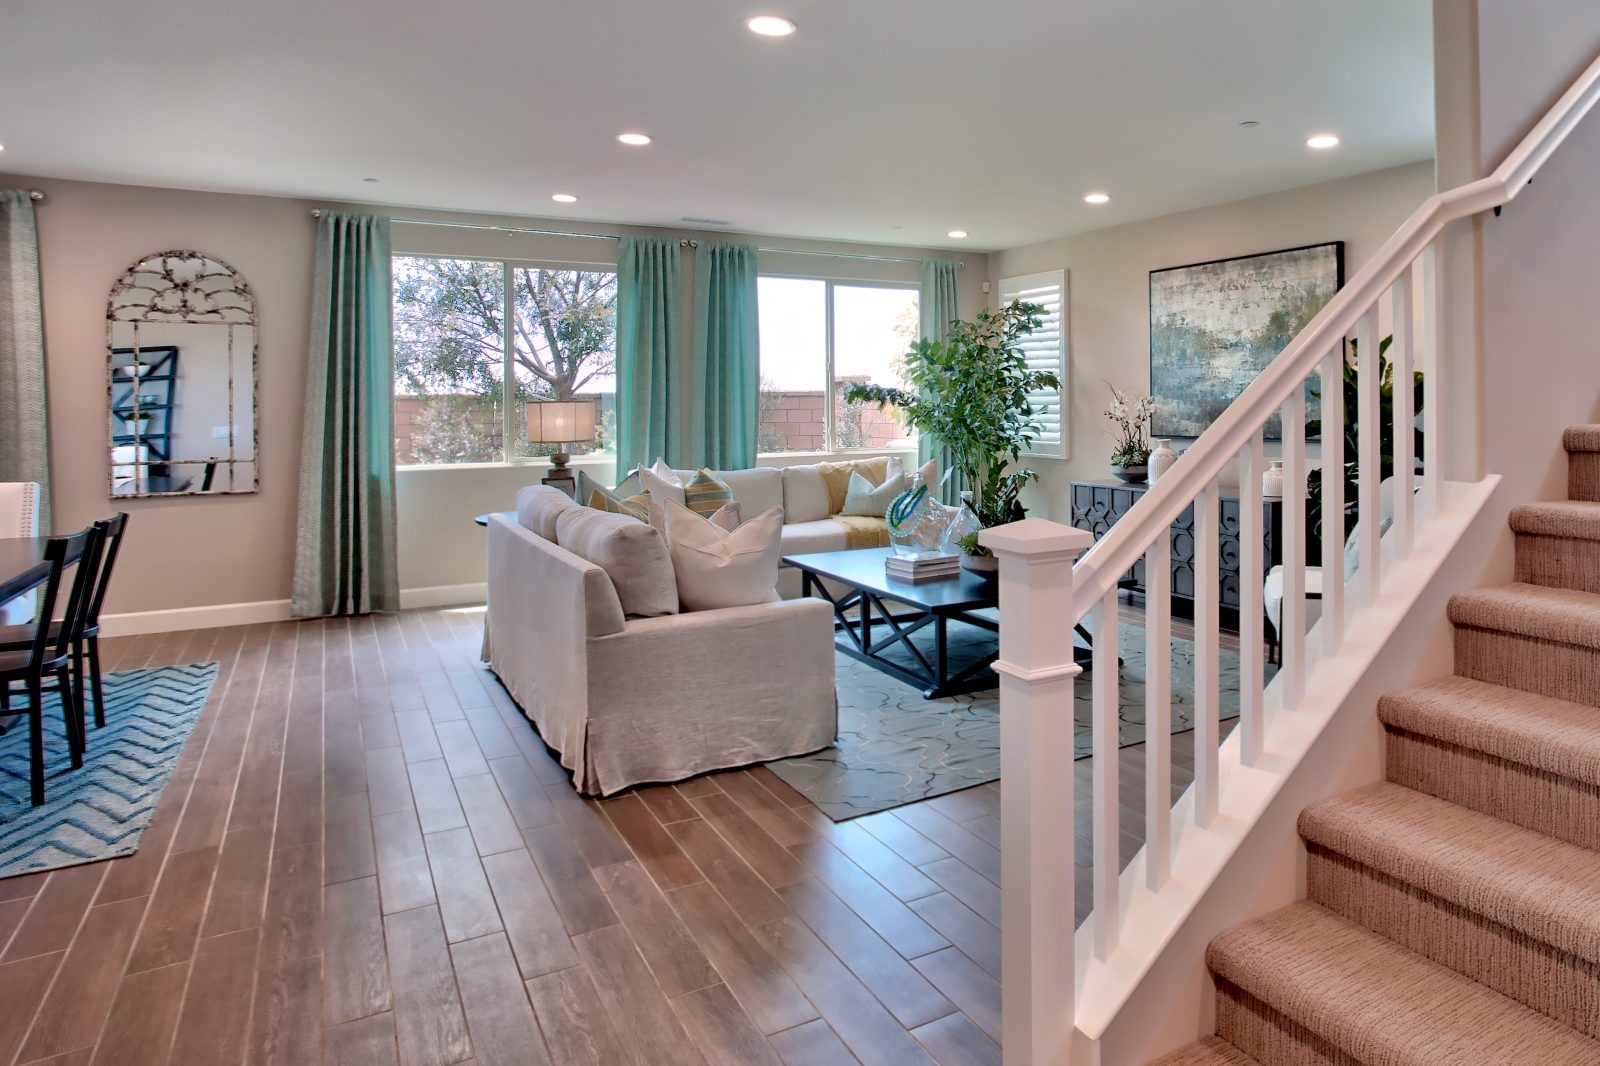 Stairs | Nectar at Spencers Crossing in Riverside, CA | Brookfield Residential